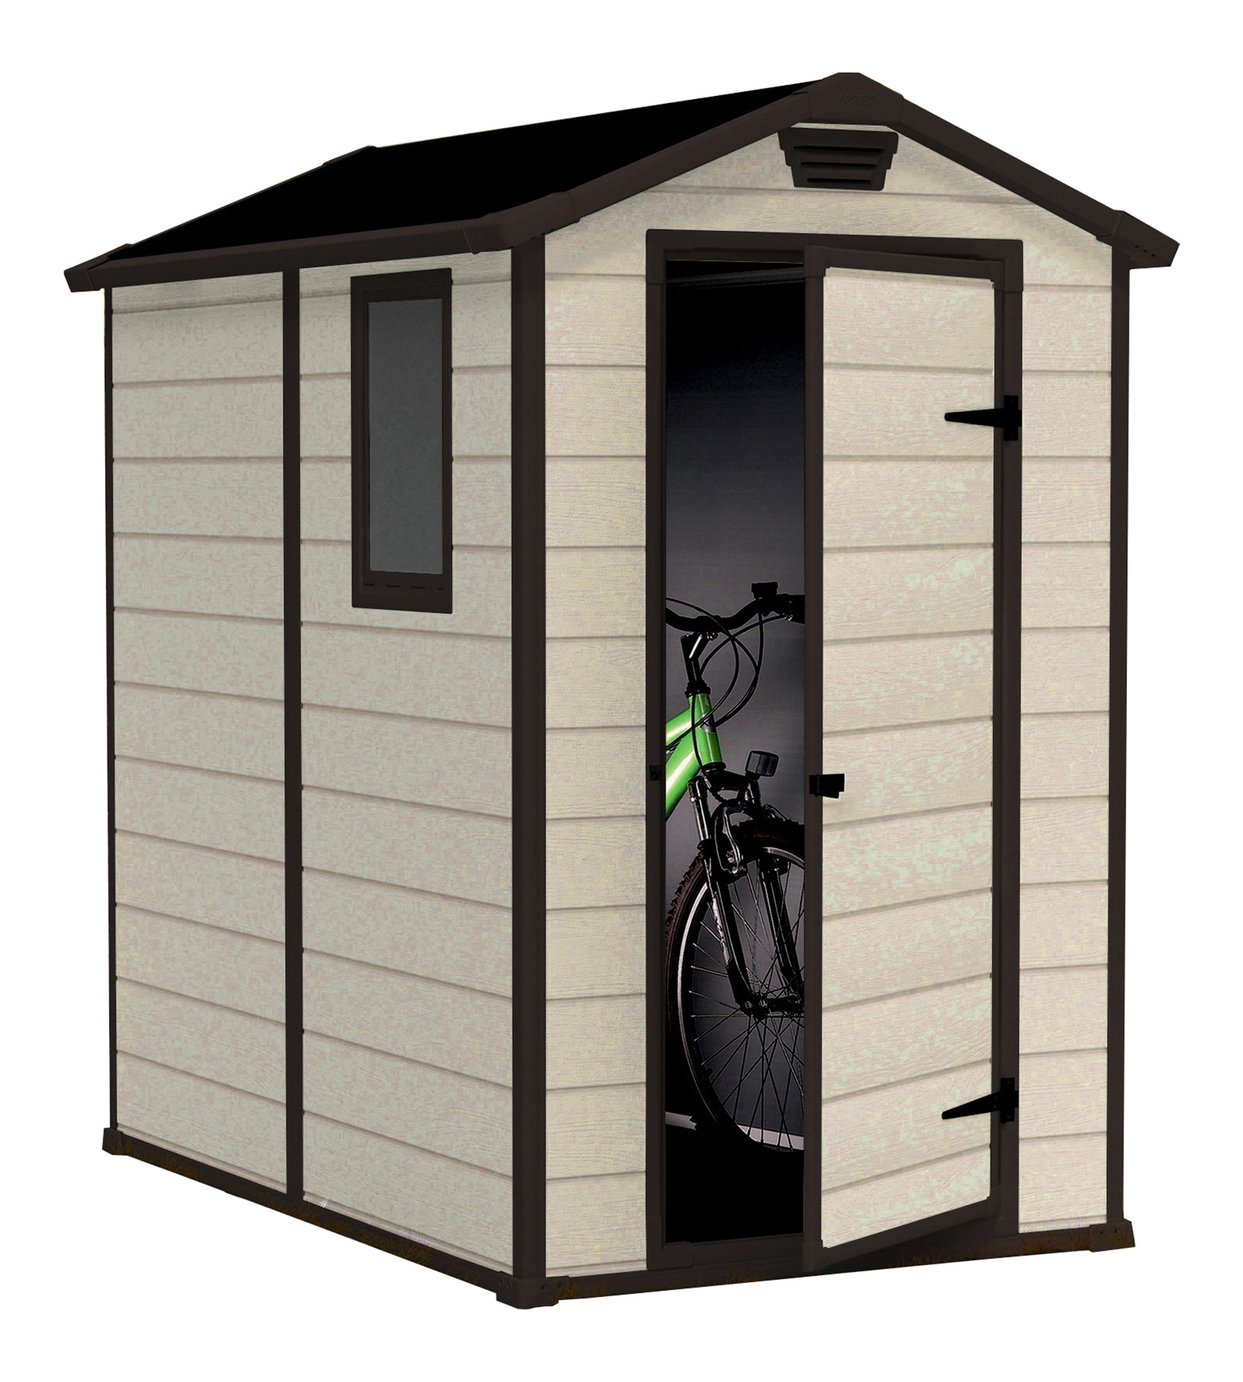 Keter Manor Apex 6x4 Plastic Shed Review